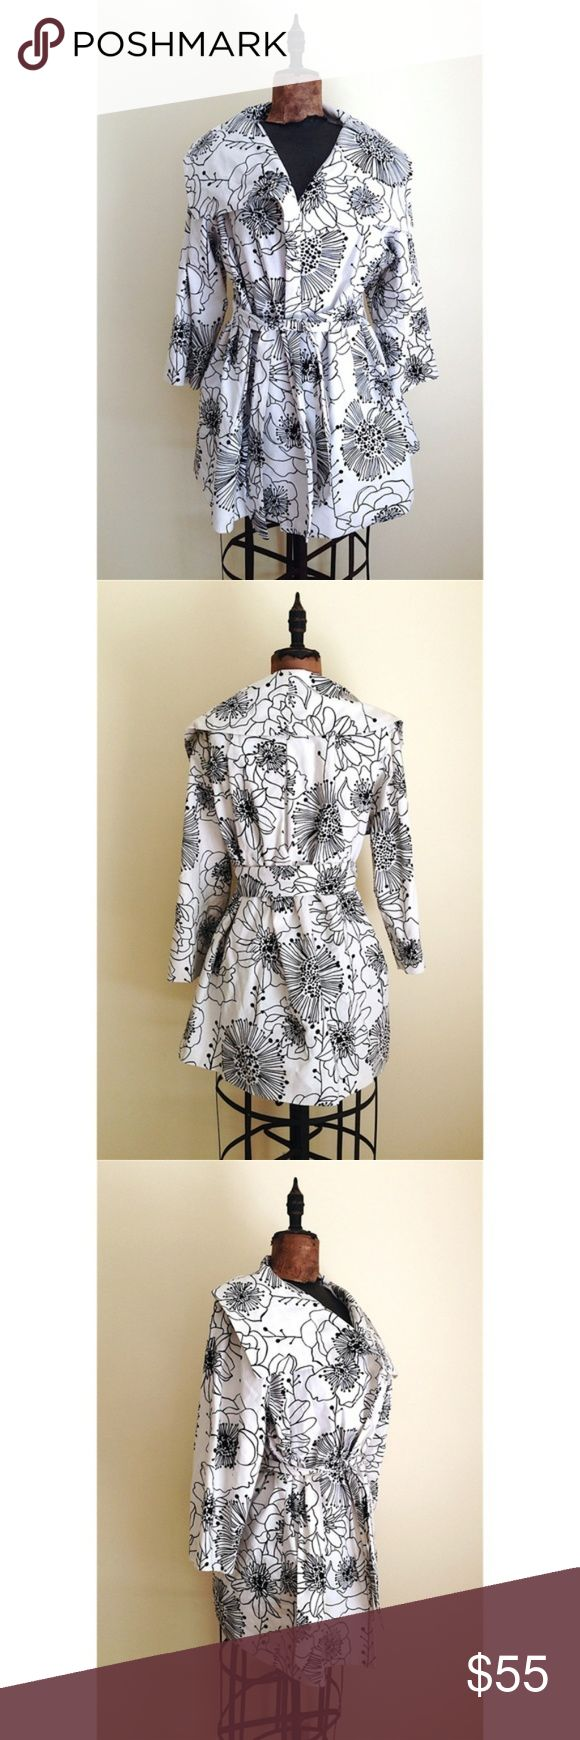 """ANNA SUI APRIL SHOWERS Trench Coat M The """"April Showers Trench"""" by Anna Sui x Anthropologie, retailed for $228. Cotton with acetate lining // graphic black dahlia print, open front, appx. 32"""" long Great condition! Sz medium Anna Sui Jackets & Coats Trench Coats"""